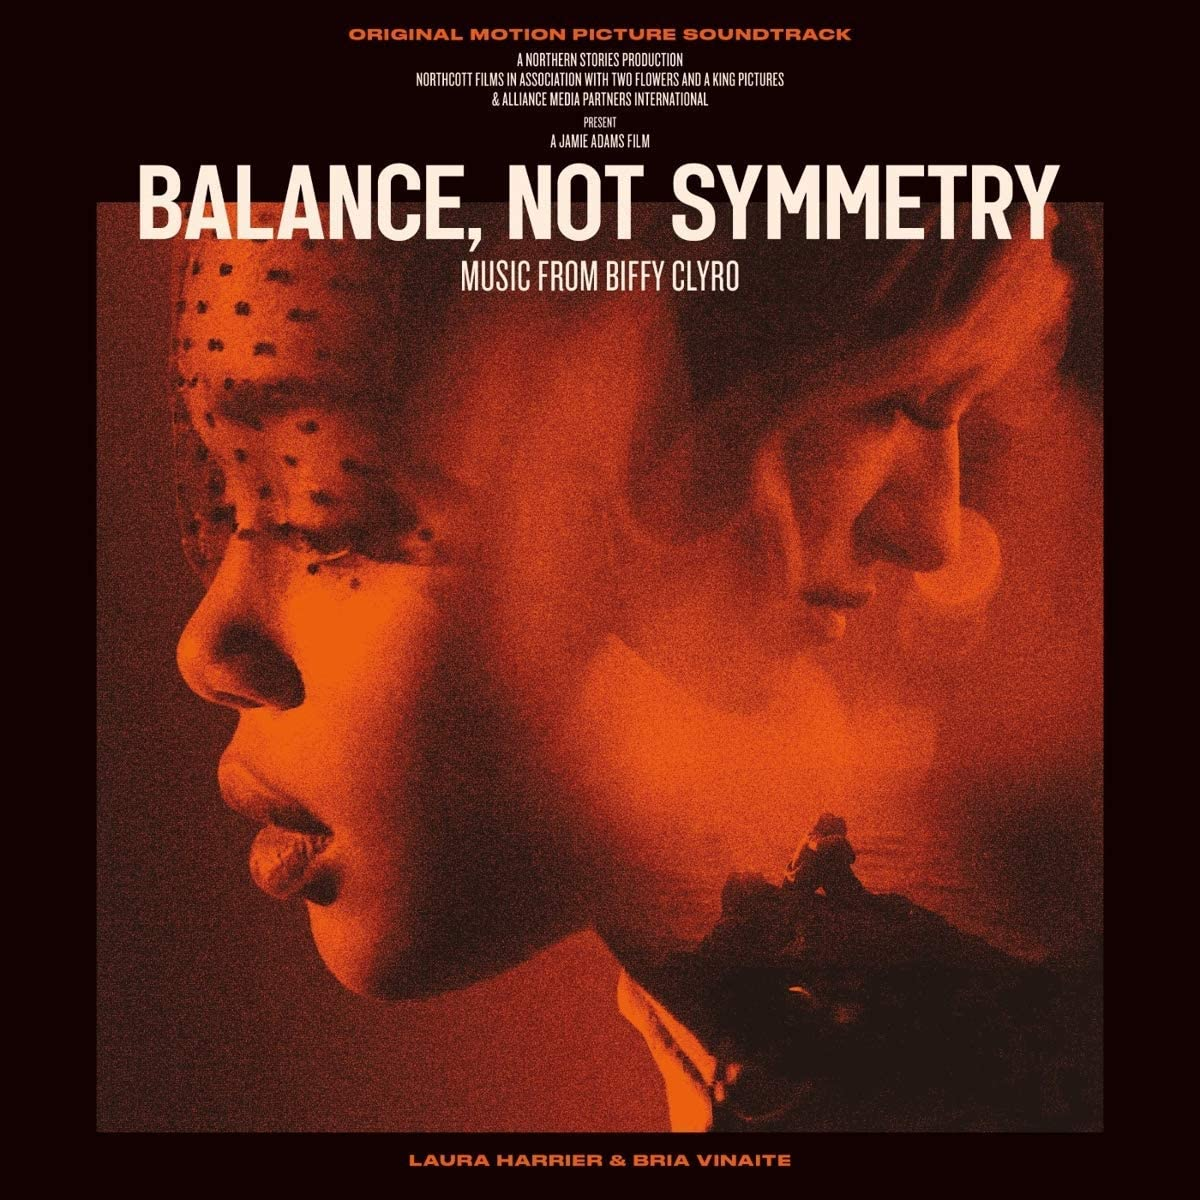 Biffy Clyro ‎– Balance, Not Symmetry OST